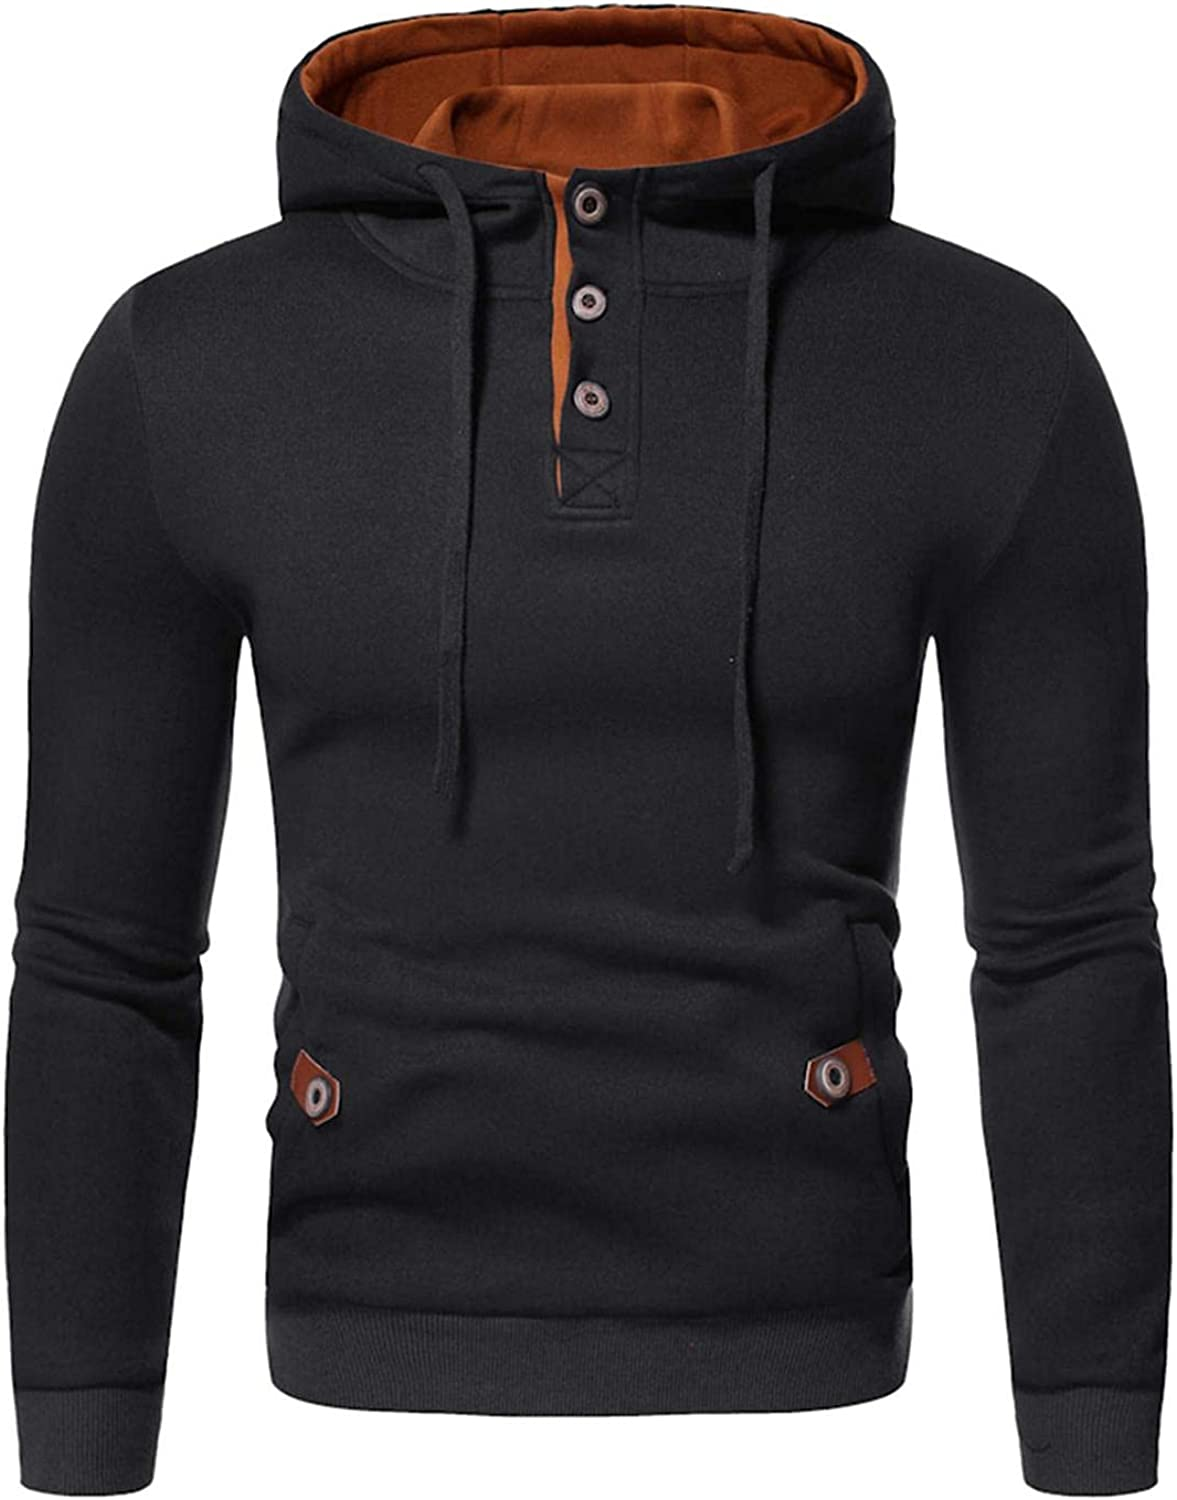 Men's Hoodies Pullover, Mens Autumn Winter Casual Long Sleeve Buttons Collars Cowl Neck Sports Hooded Sweatshirts Pocket